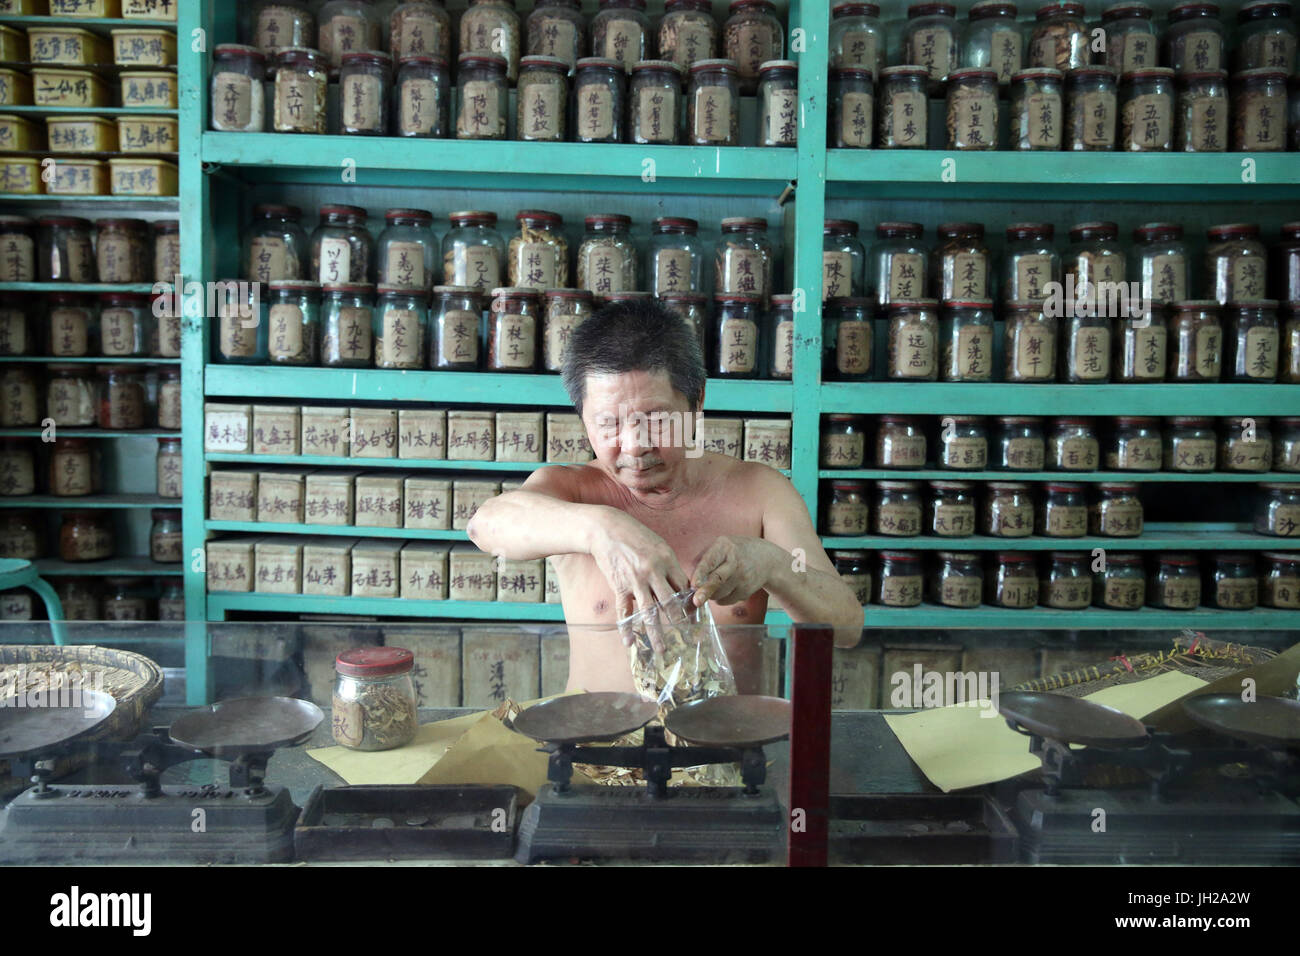 Traditional Chinese medicine pharmacy.  Herbal medicine therapy.  Ho Chi Minh City. Vietnam. - Stock Image